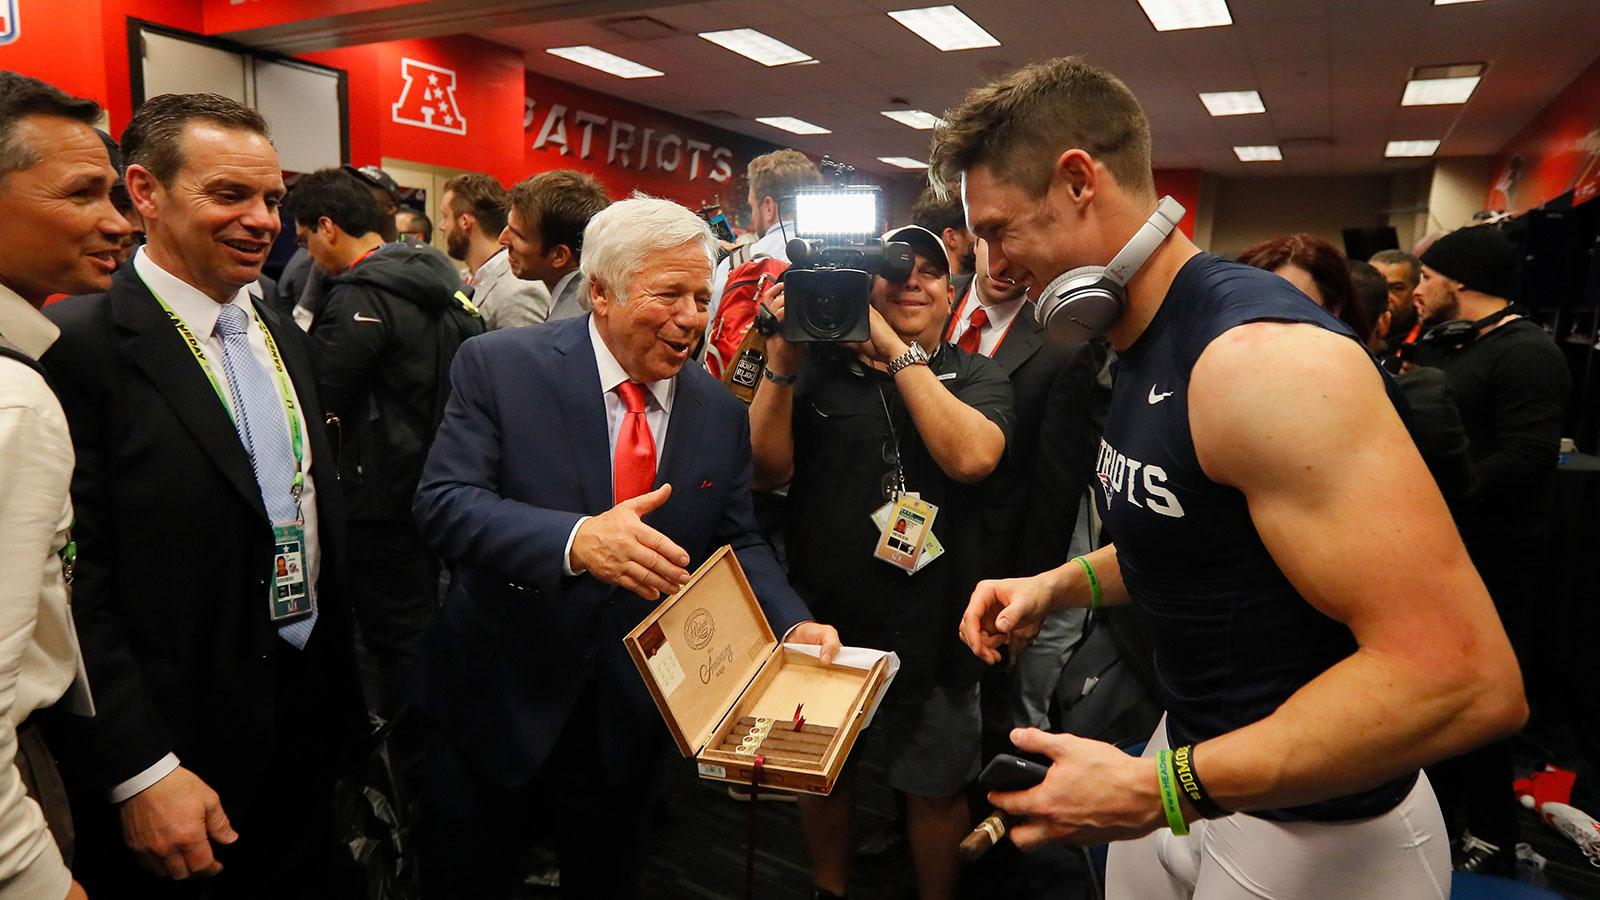 Patriots' owner Robert Kraft offers receiver Chris Hogan a celebratory Padrón cigar after winning Super Bowl LI.